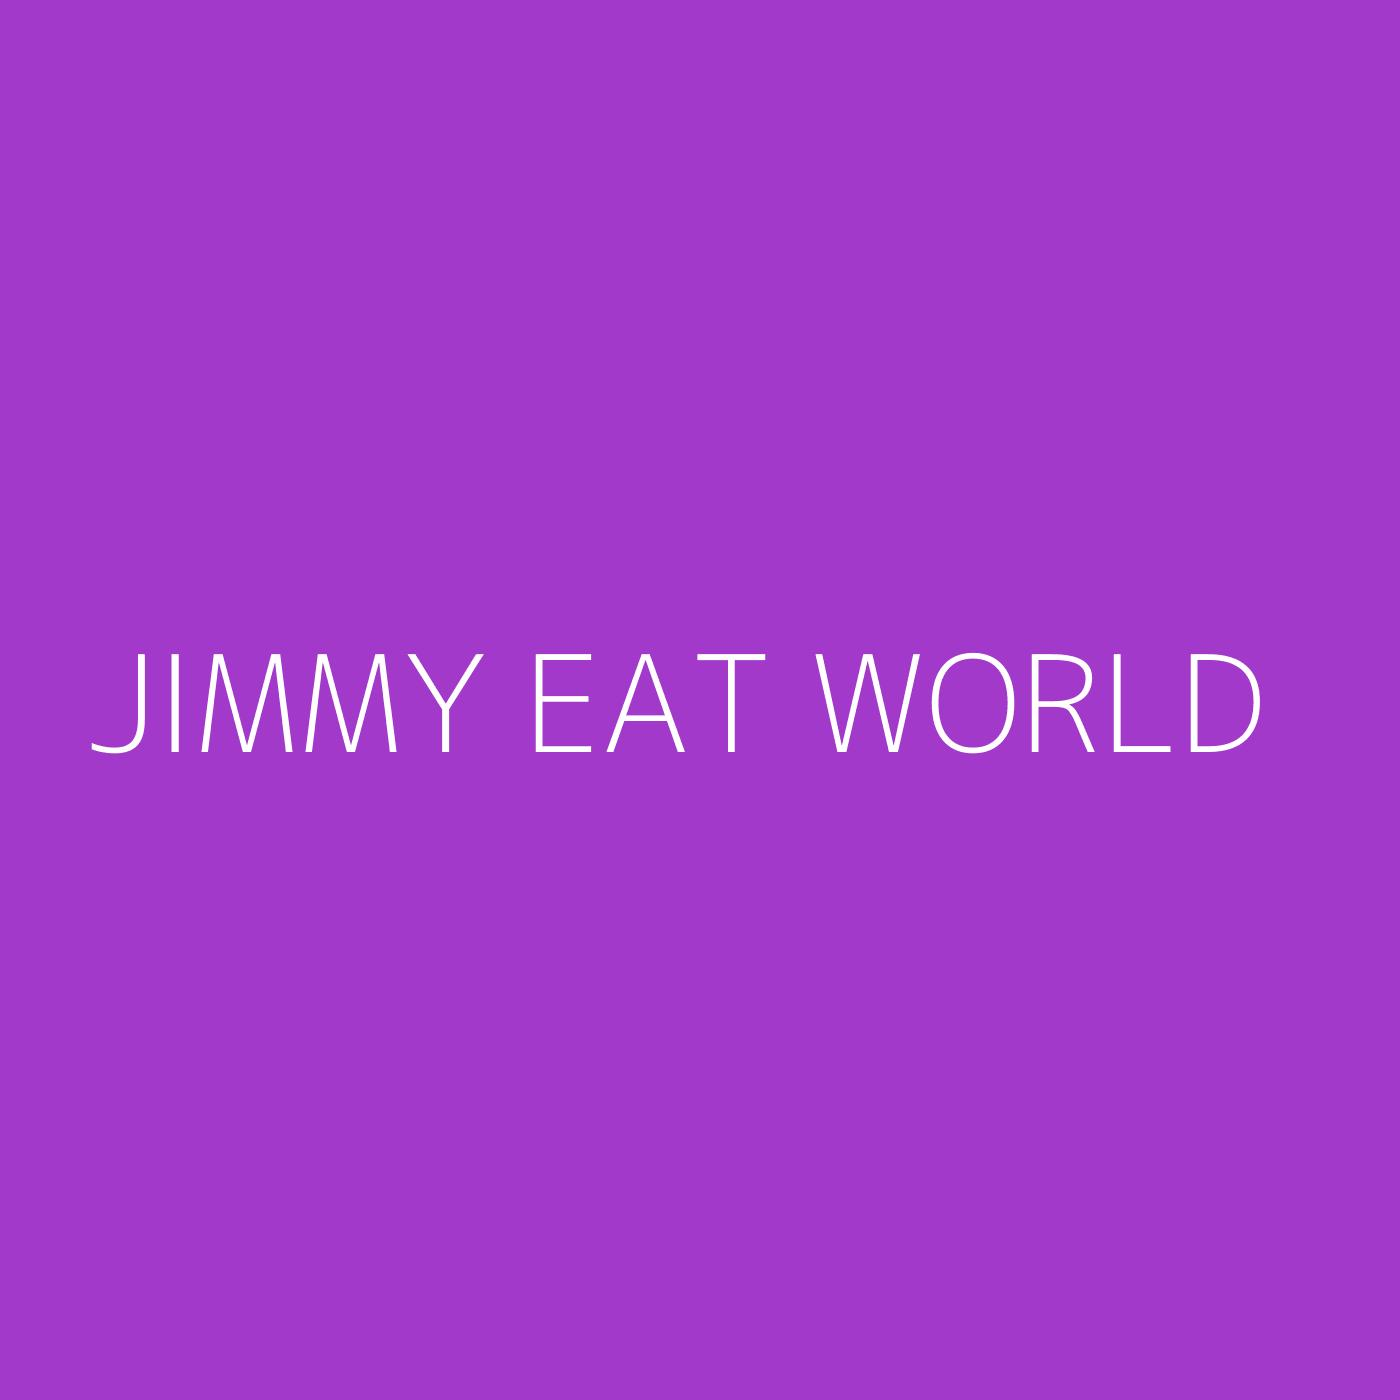 Jimmy Eat World Playlist Artwork